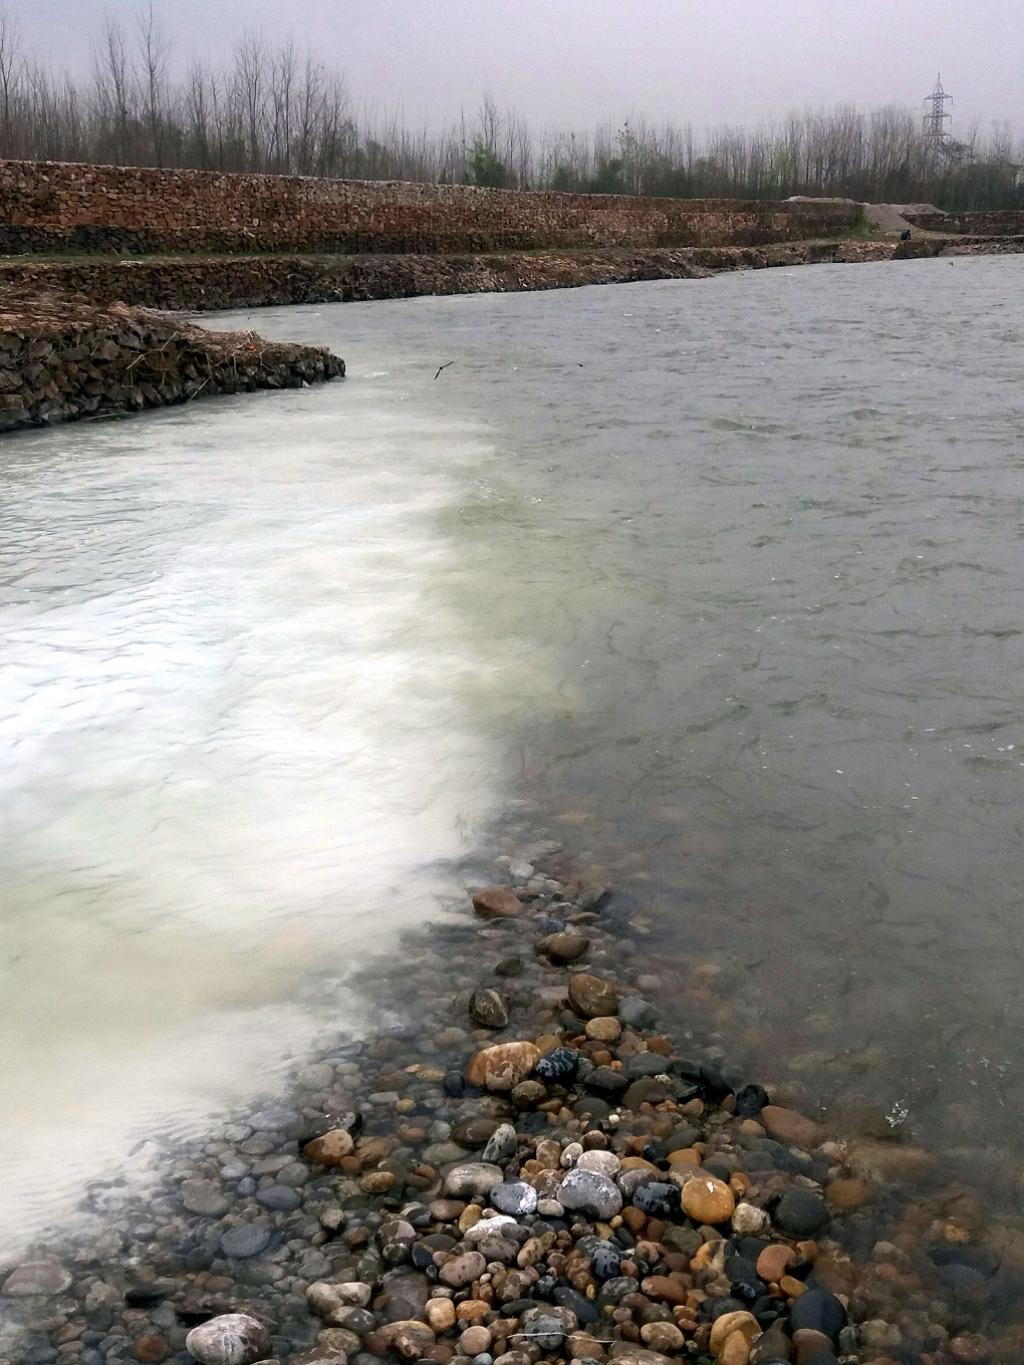 Polluted water (white in colour) of the Subhan Khawar converges into Kabul river at Shabqadar Tehsil of Charsadda district. Credit: Adeel Saeed